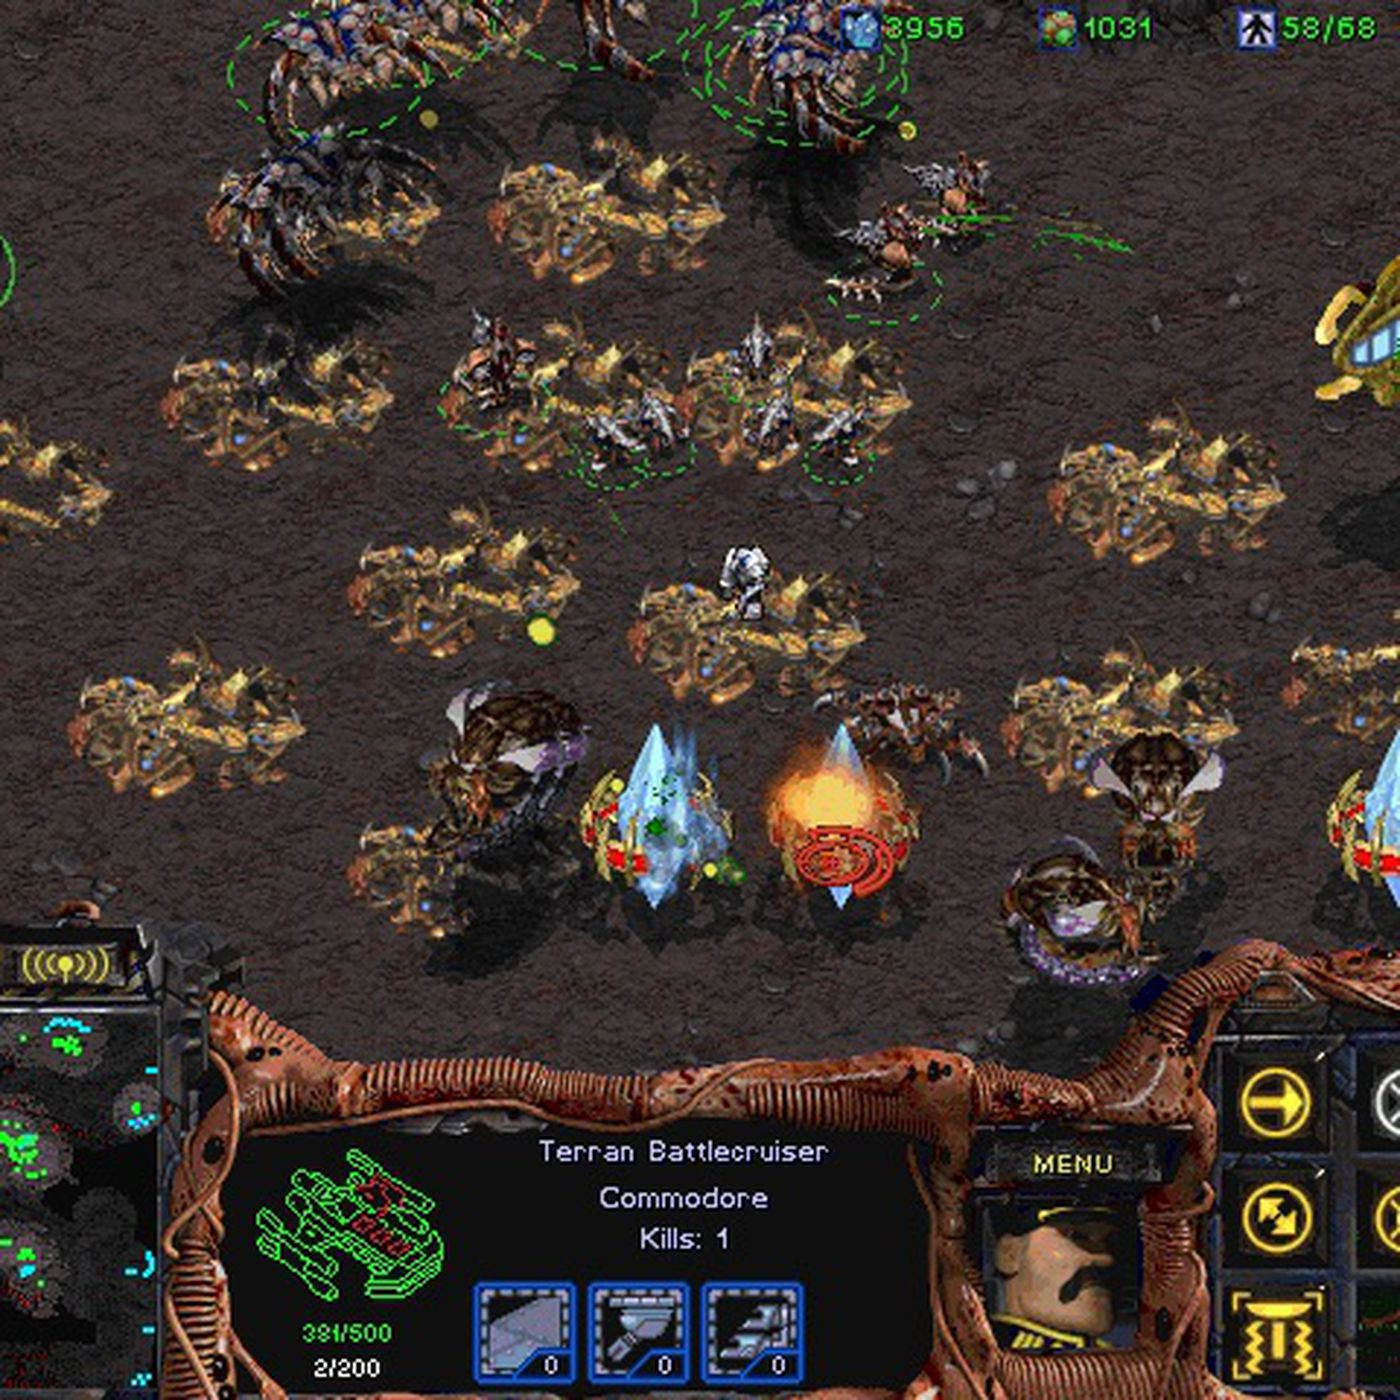 Free Online Platform Games No Download pc classic starcraft is now free - the verge